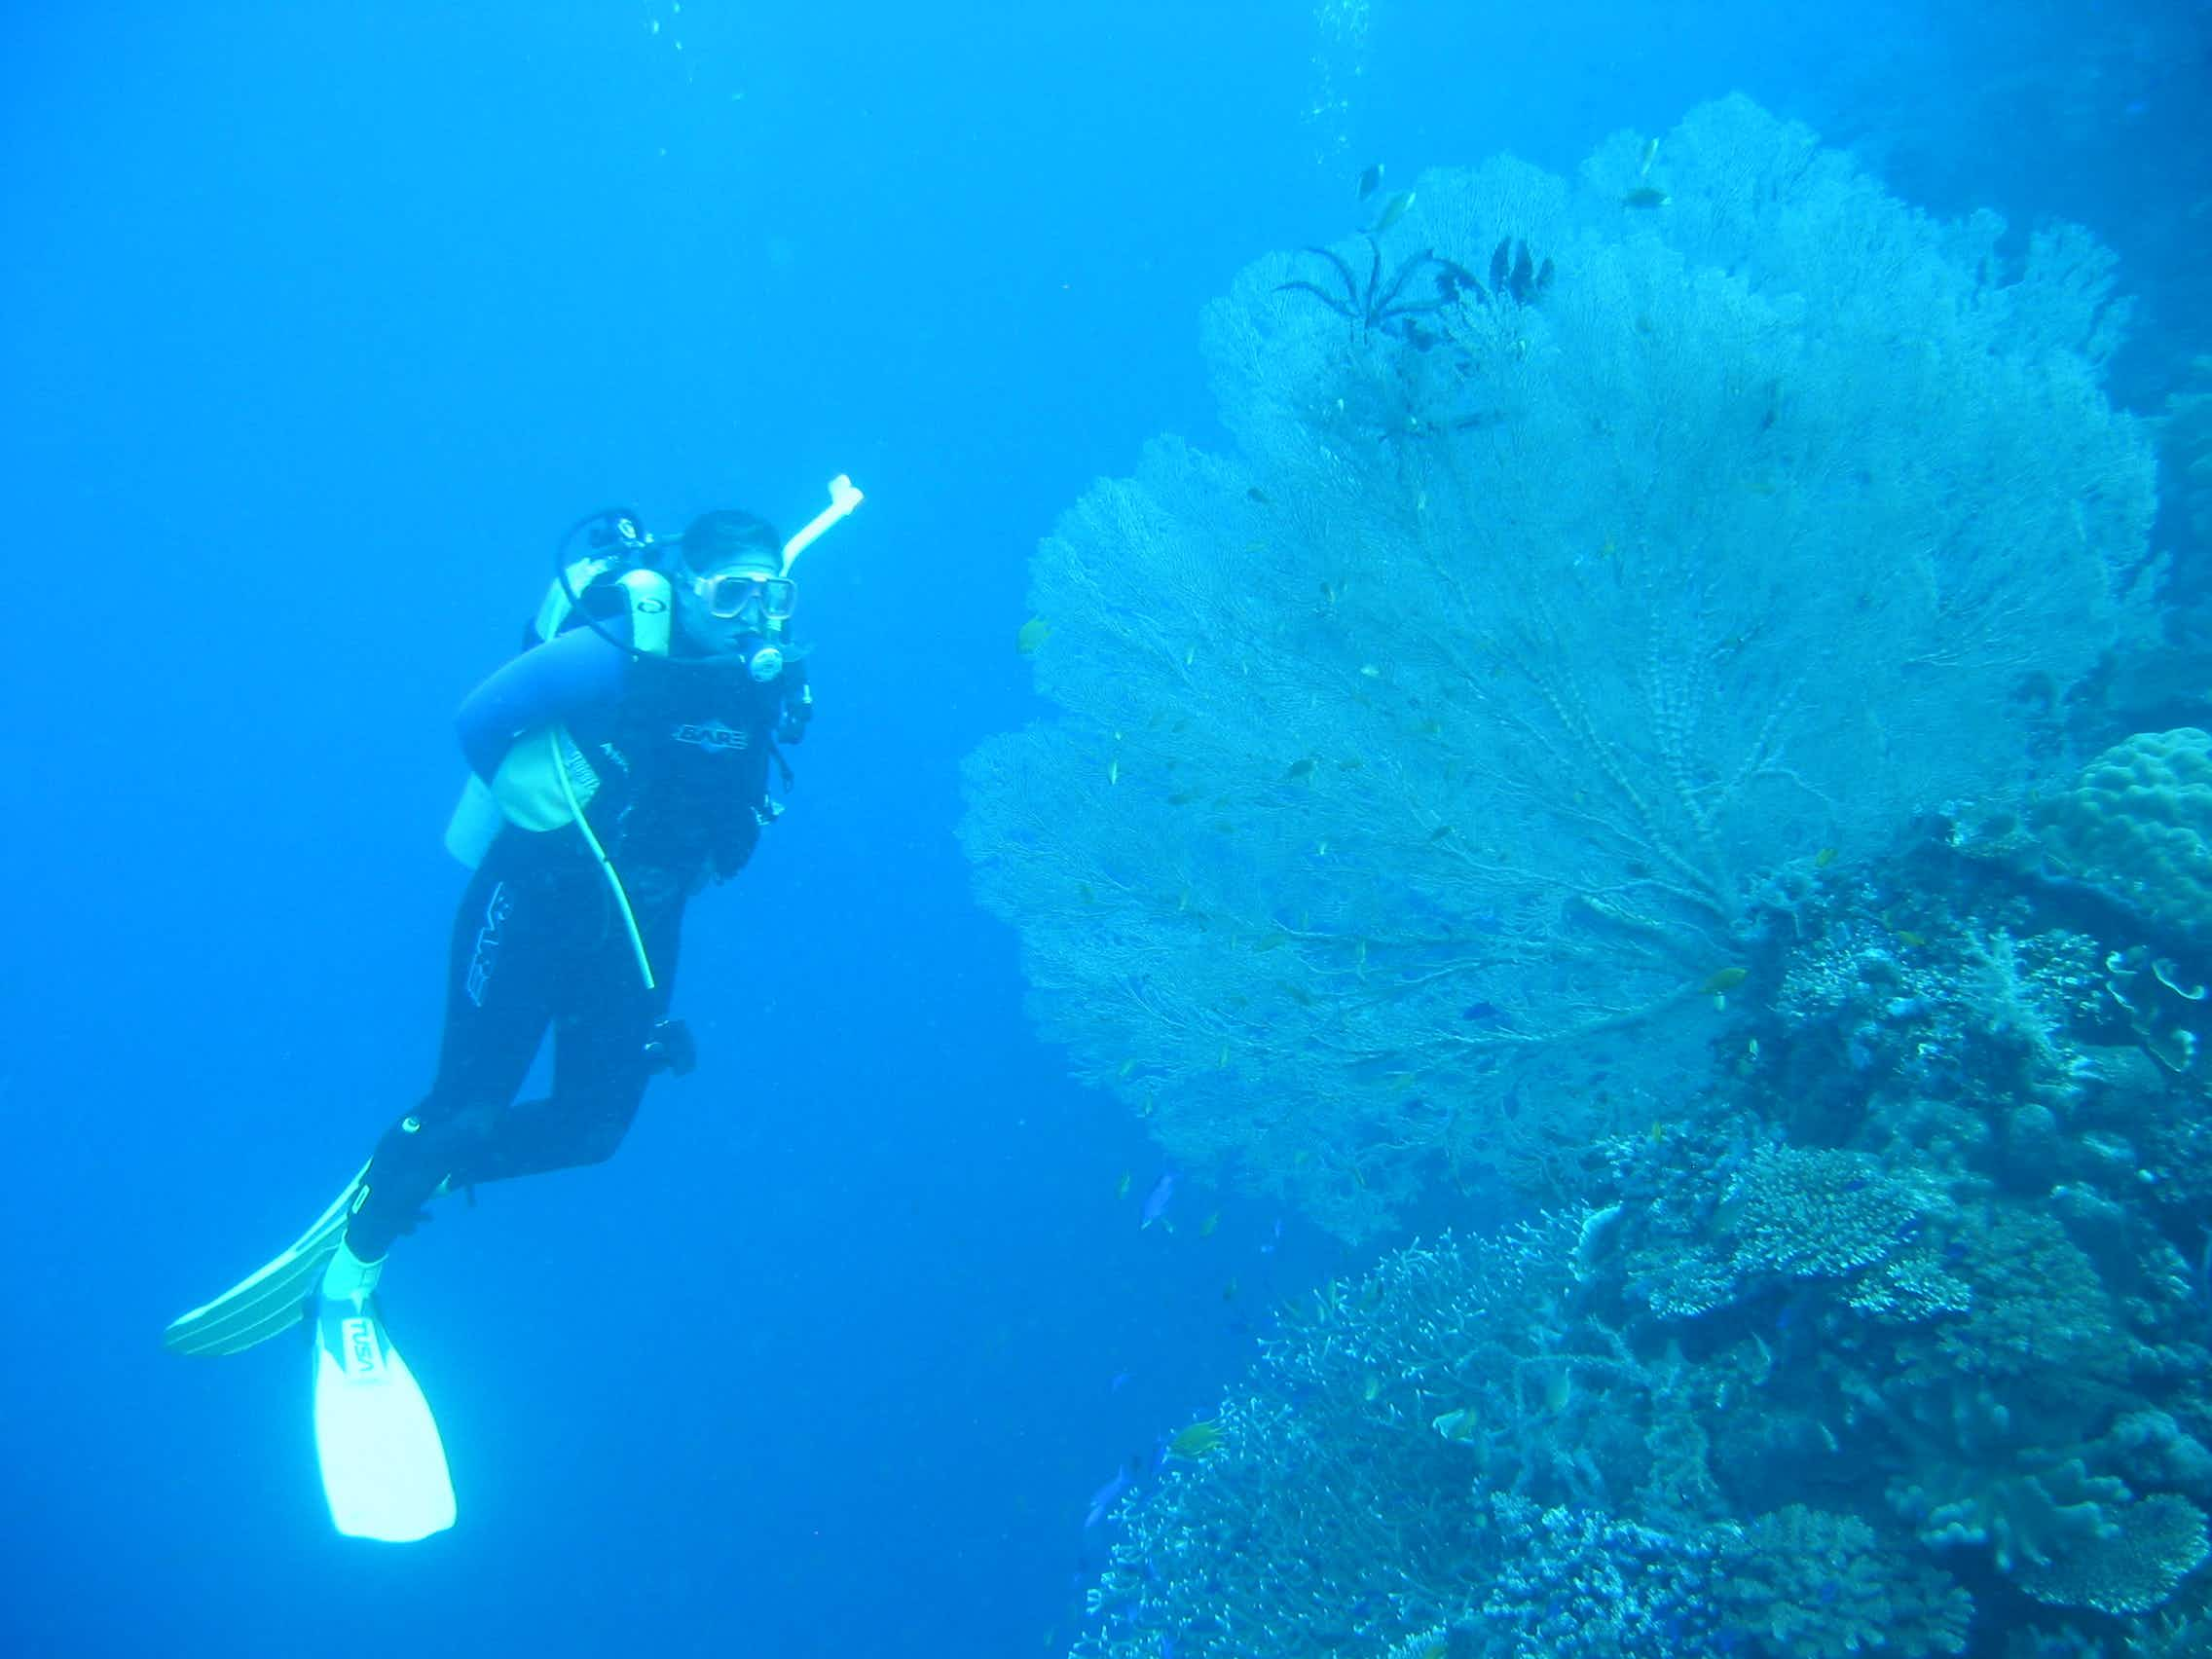 Dr. Vincent dives in damaged habitats to figure out what to do for species and spaces that are at risk.